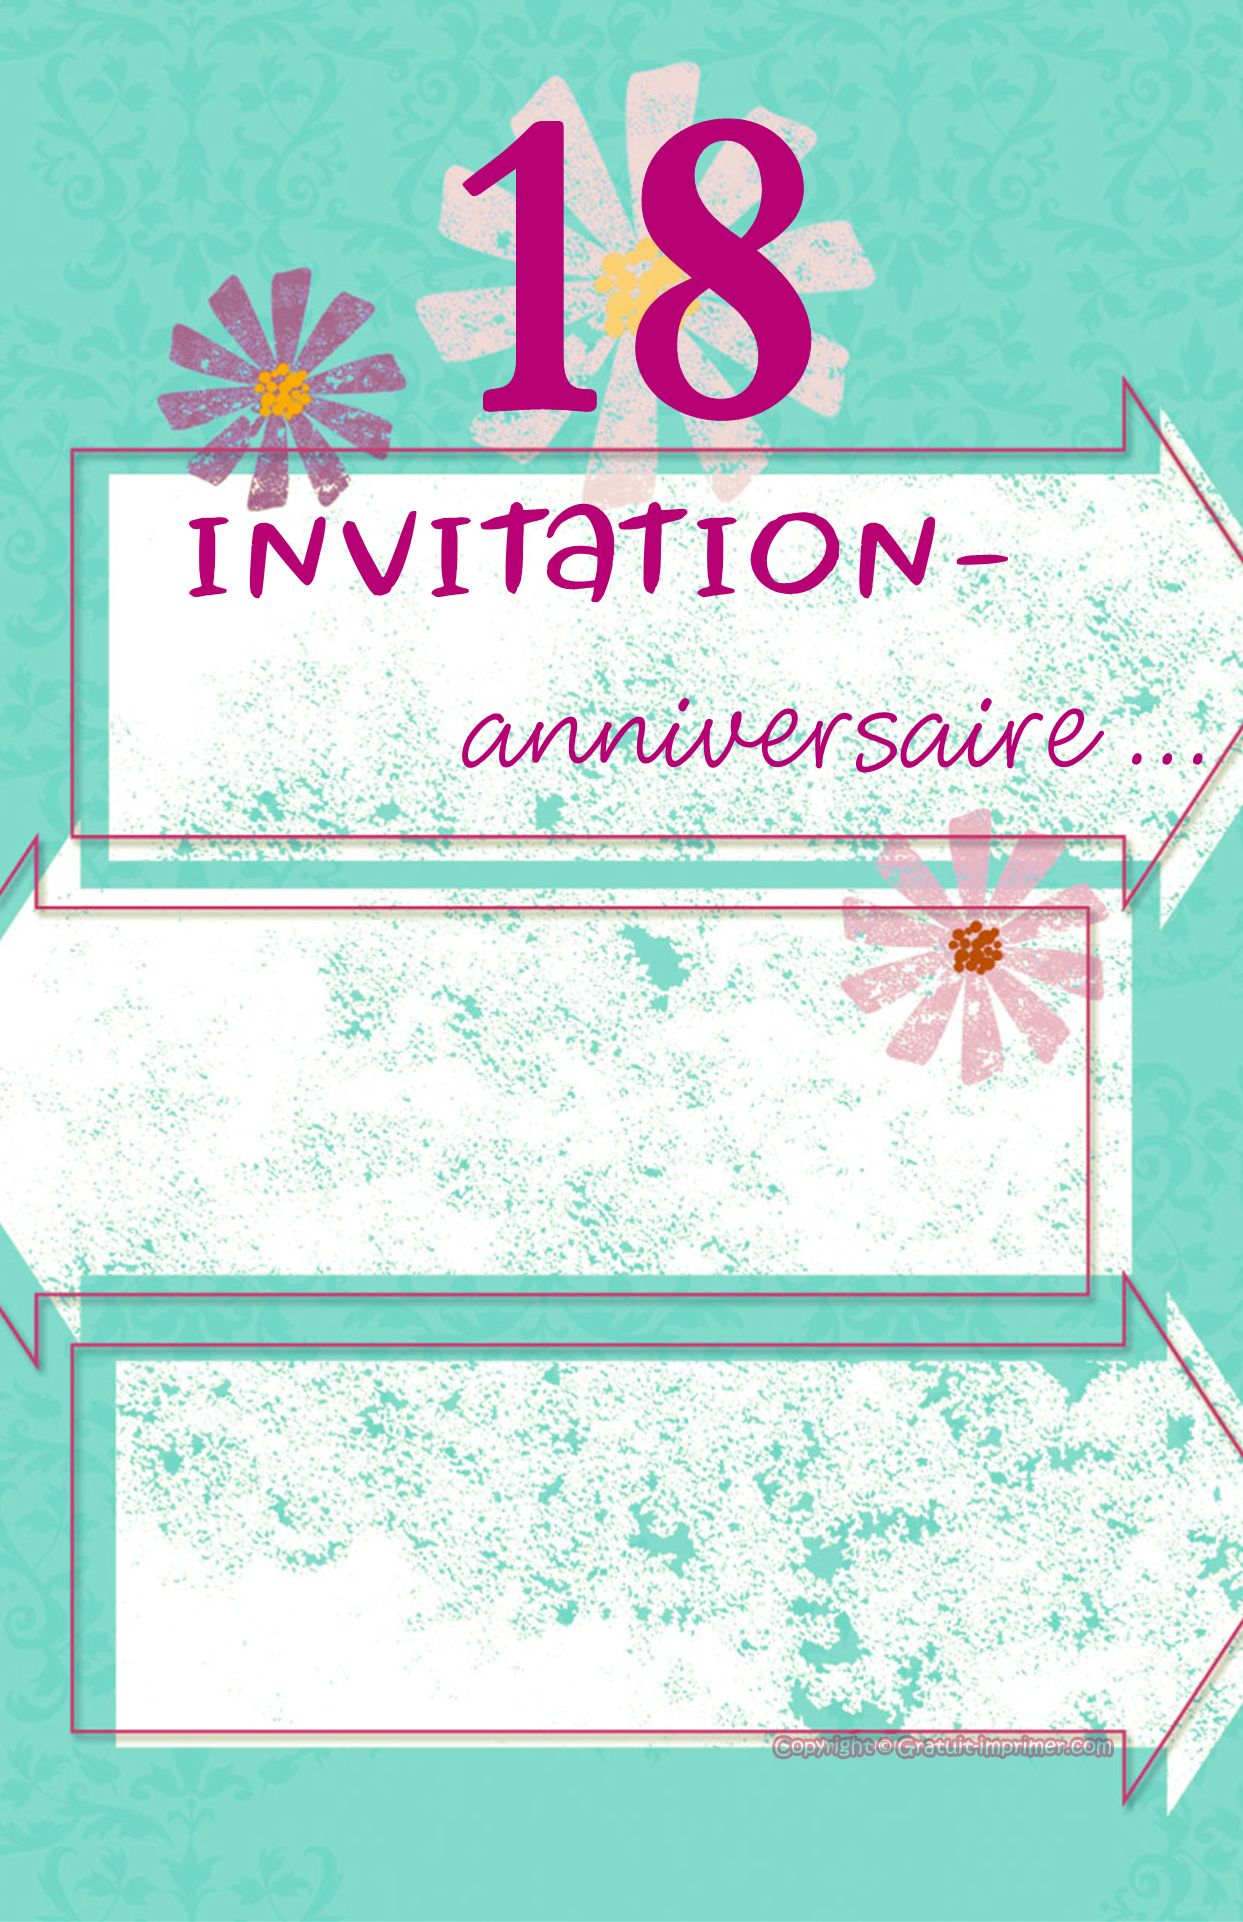 carte invitation anniversaire de 18 ans gratuite a imprimer pour fille invitations pinterest. Black Bedroom Furniture Sets. Home Design Ideas